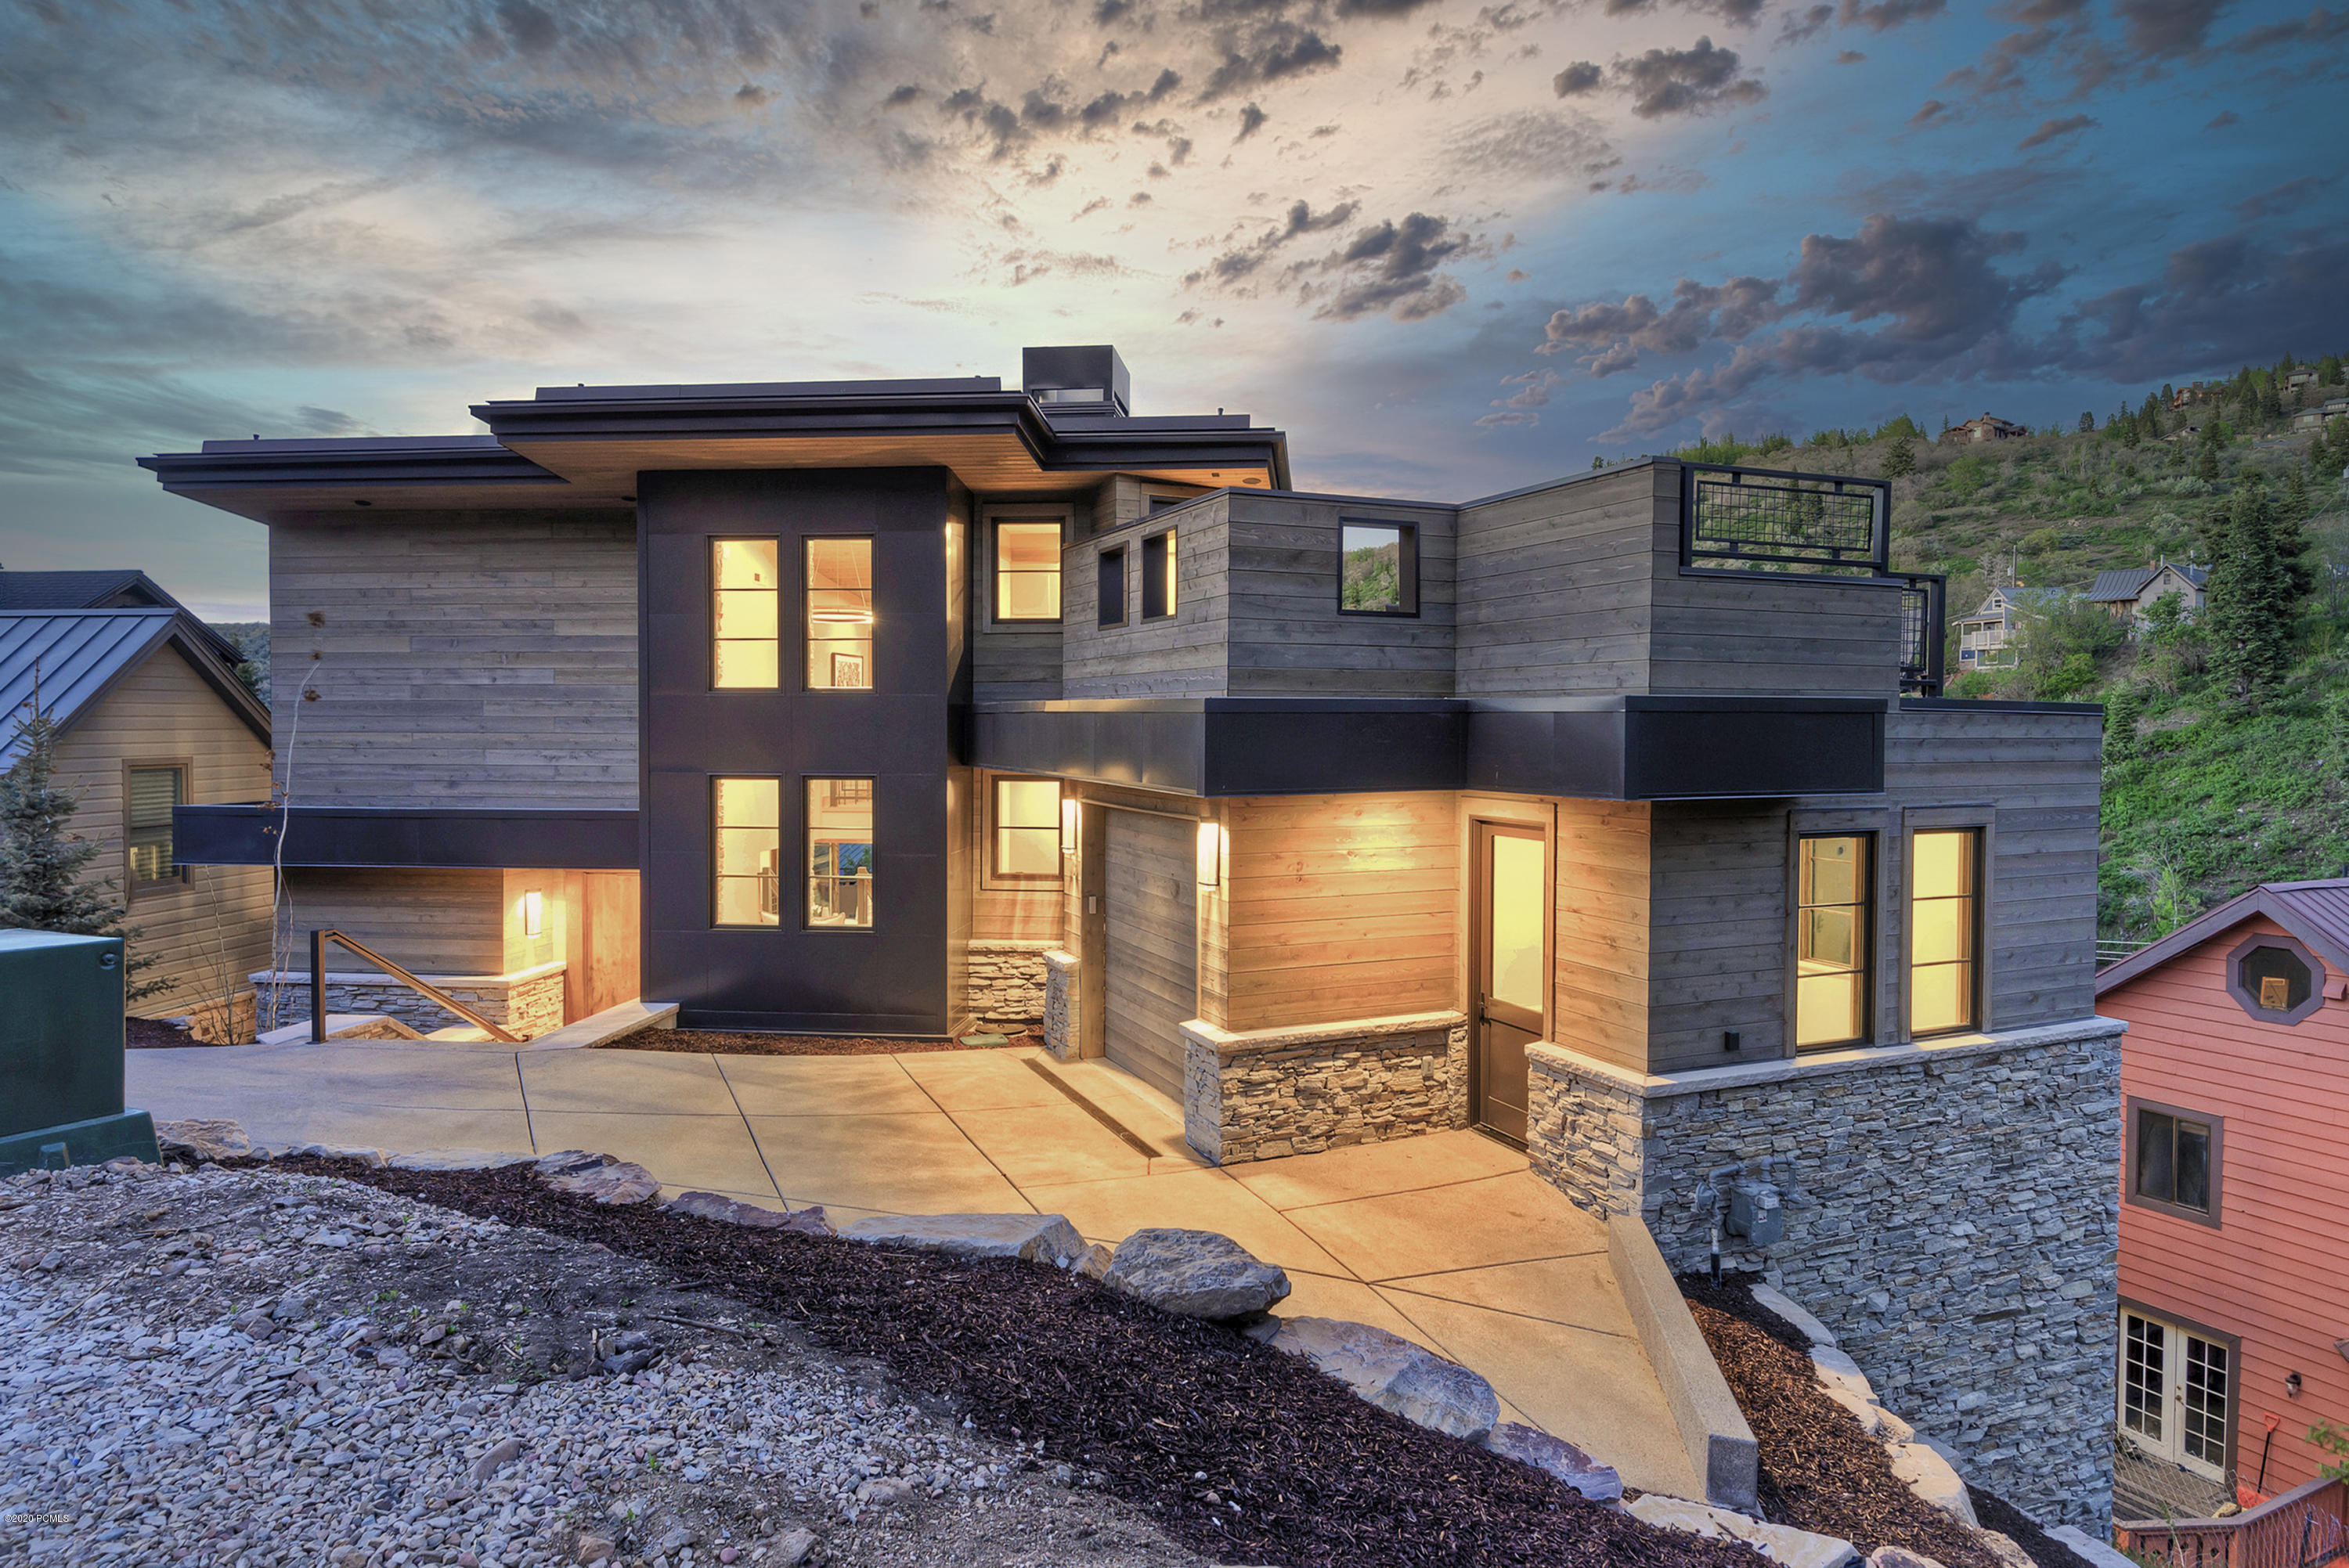 49 King Drive, Park City, Utah 84060, 4 Bedrooms Bedrooms, ,6 BathroomsBathrooms,Single Family,For Sale,King,20190109112430415765000000